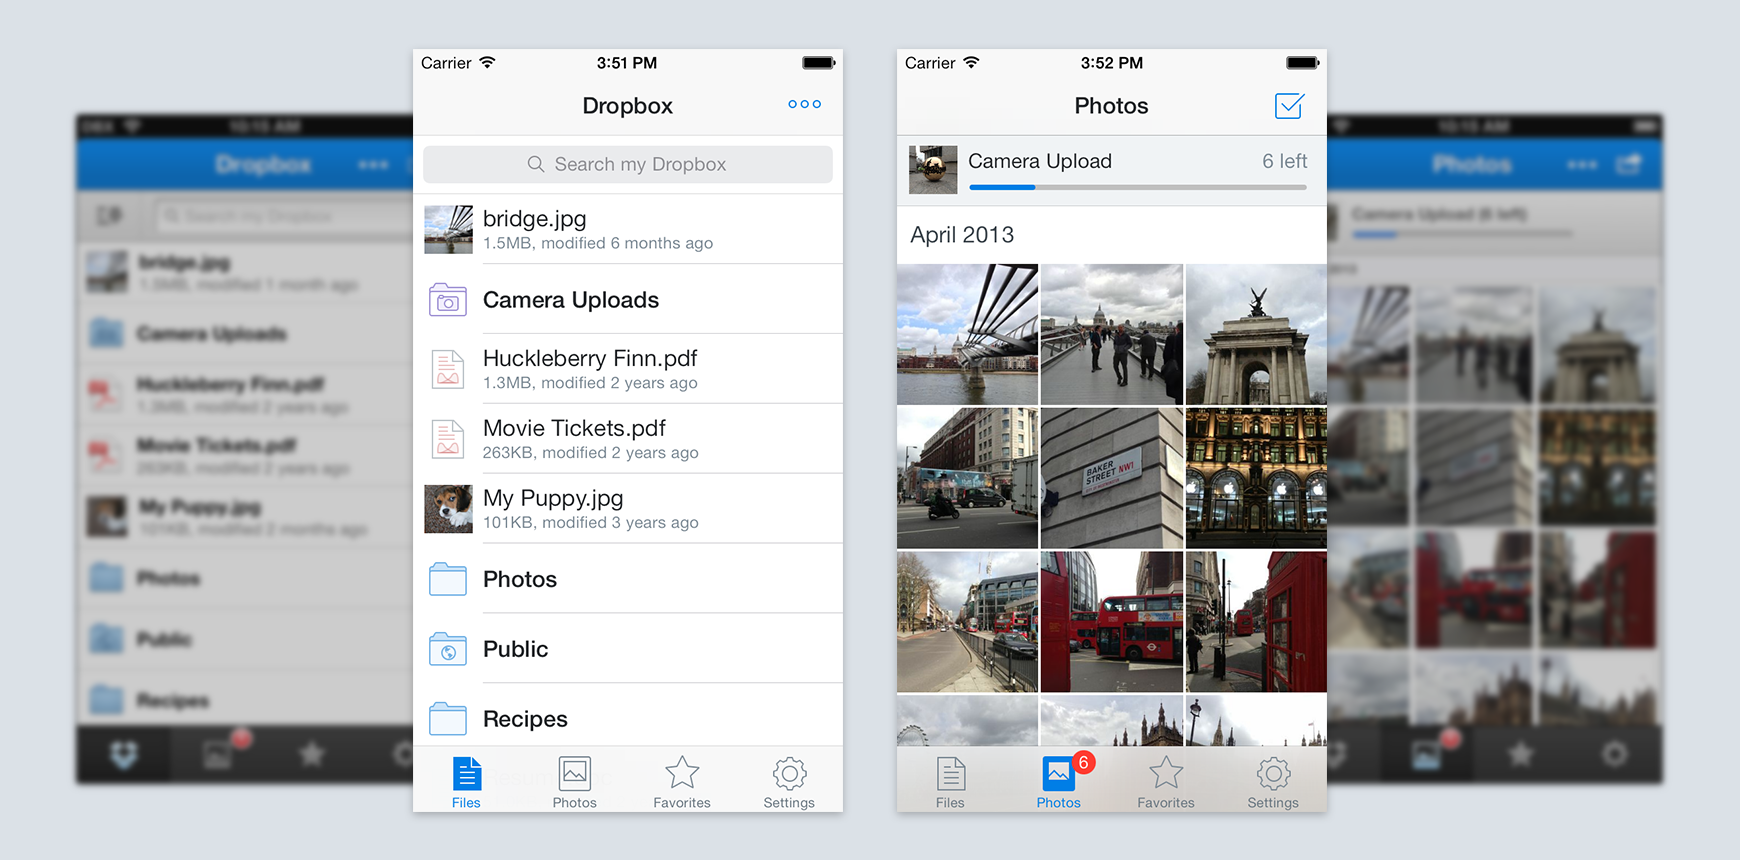 dropbox-ios7-comparison-final